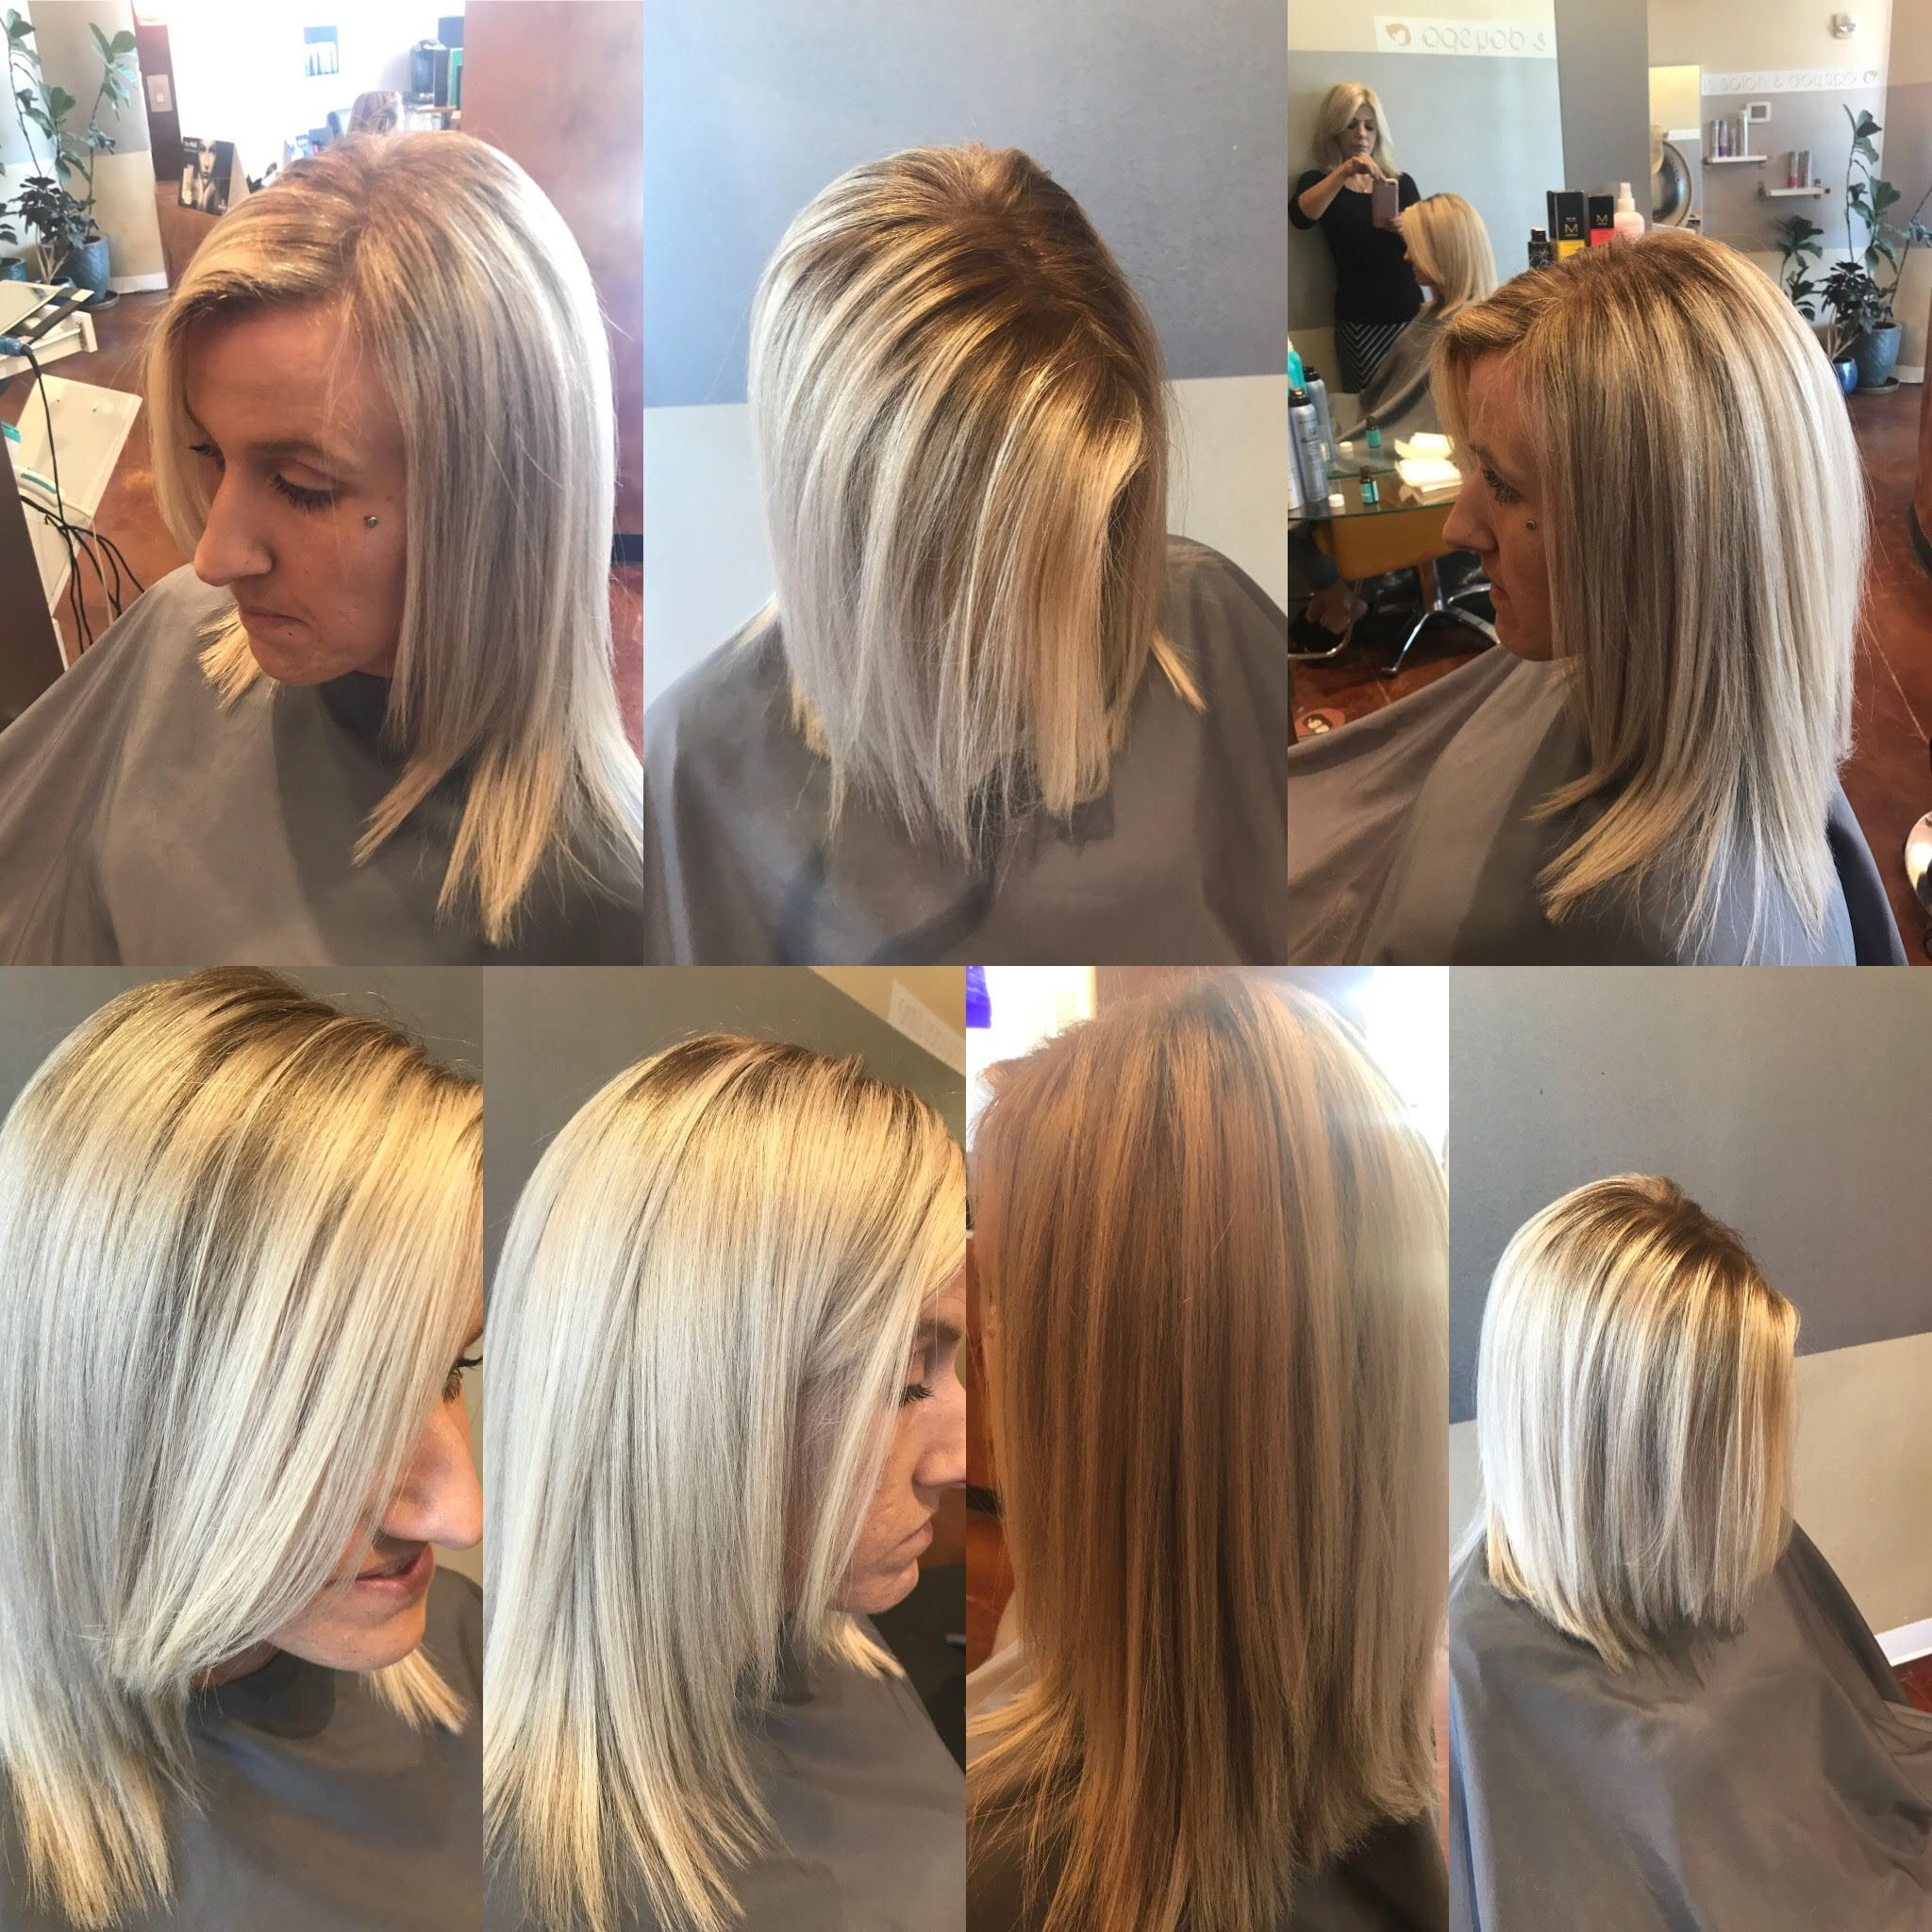 We At Salonspa7 Understand All Your Concerns About Your Hair And Solve Your Problems With Wide Range Of Hair Colour S Best Hair Salon Hair Highlights Hair Care